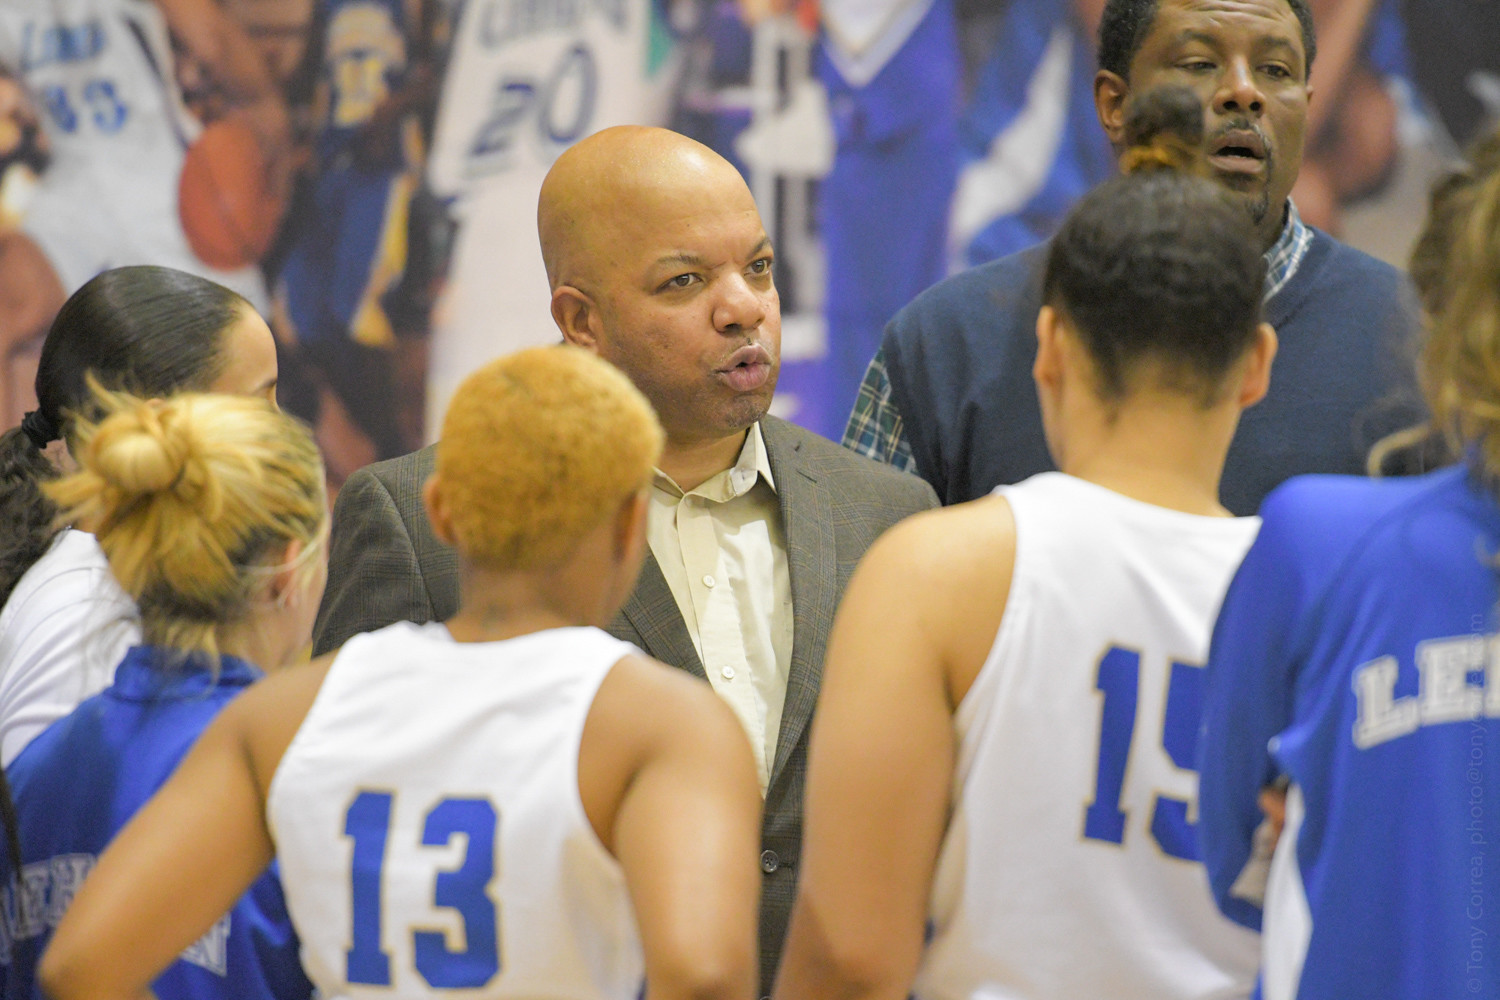 Lehman head coach Eric Harrison rips into his team during the Lightning's 78-75 loss to Ramapo last week. Harrison later said his team is in major need of an attitude adjustment.